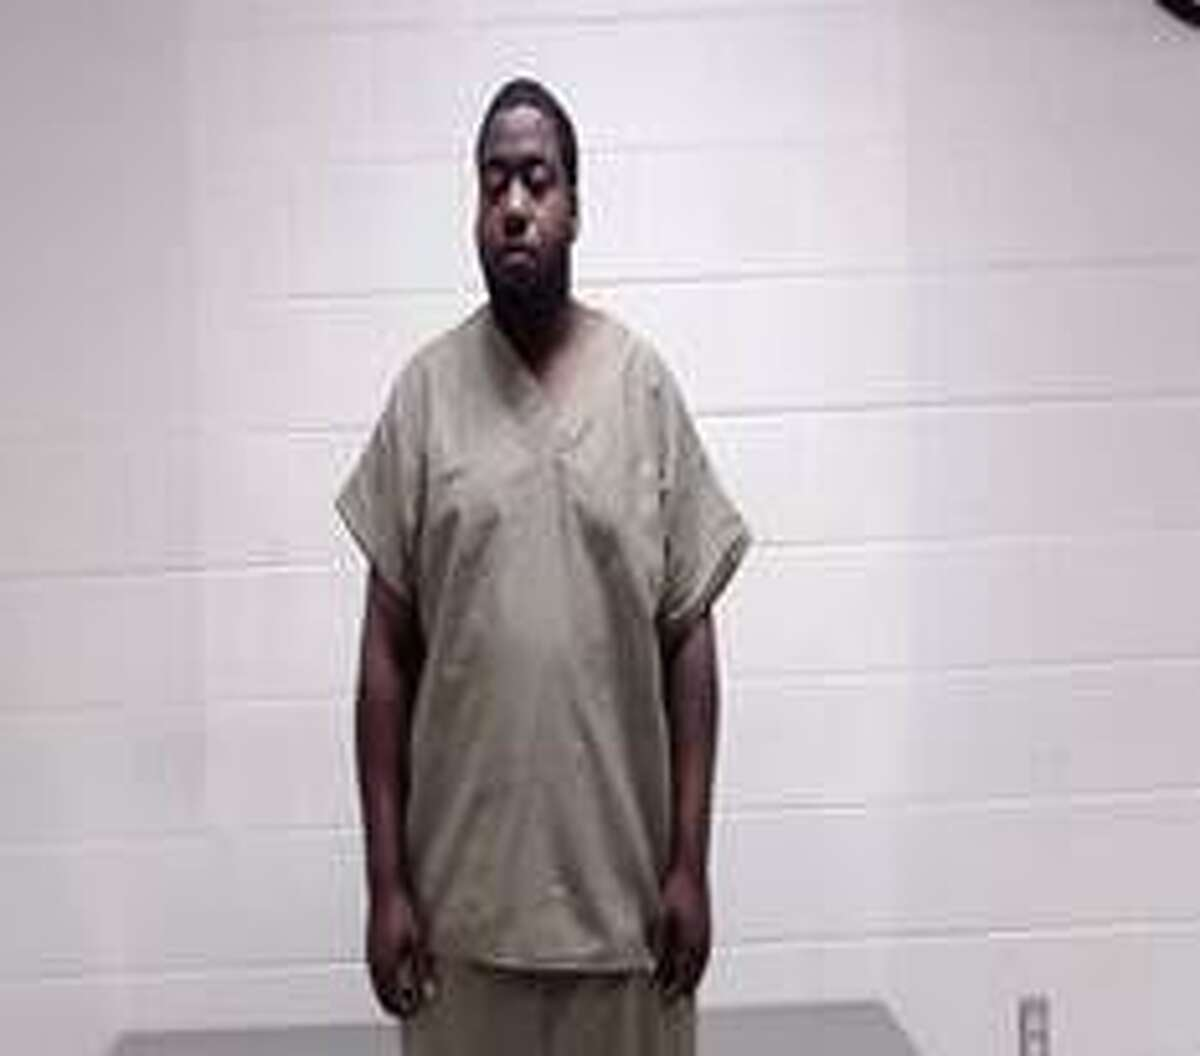 Londell Laviene, 28, was charged with interfering with public duties and resisting arrest.